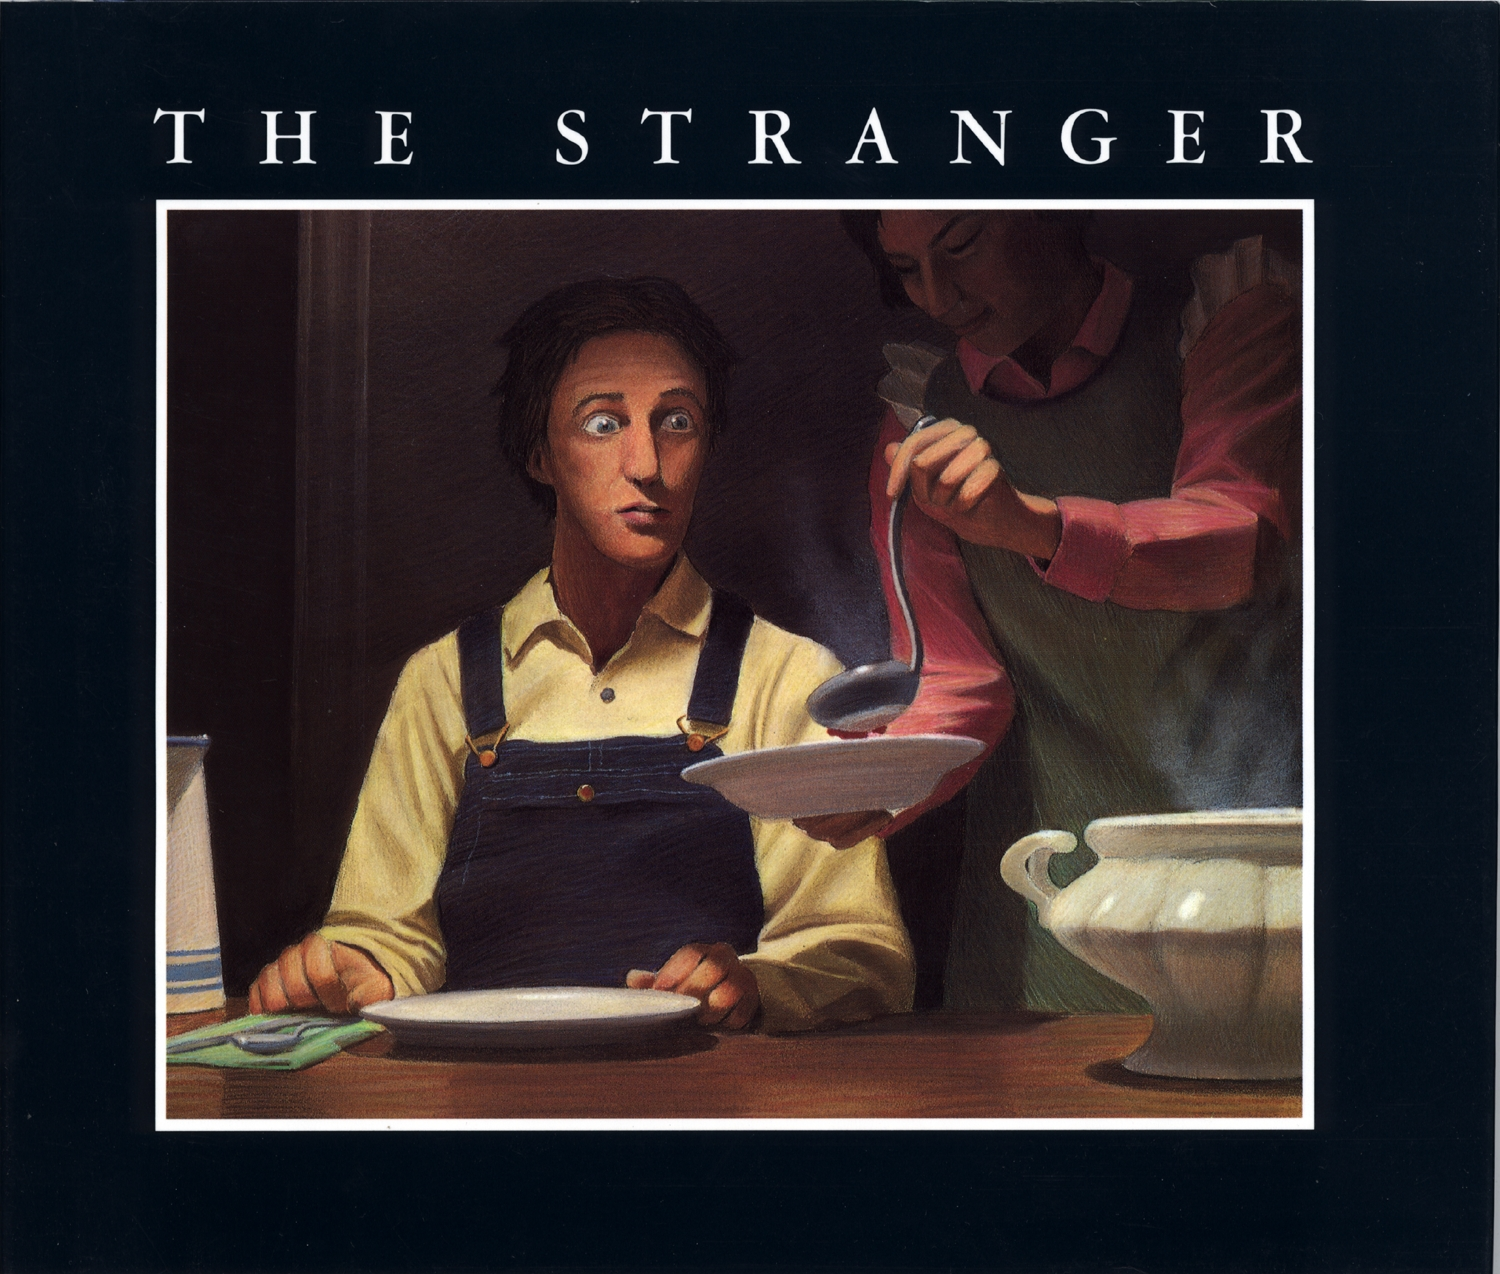 https://thesubtlelandscape.files.wordpress.com/2008/10/stranger.jpg